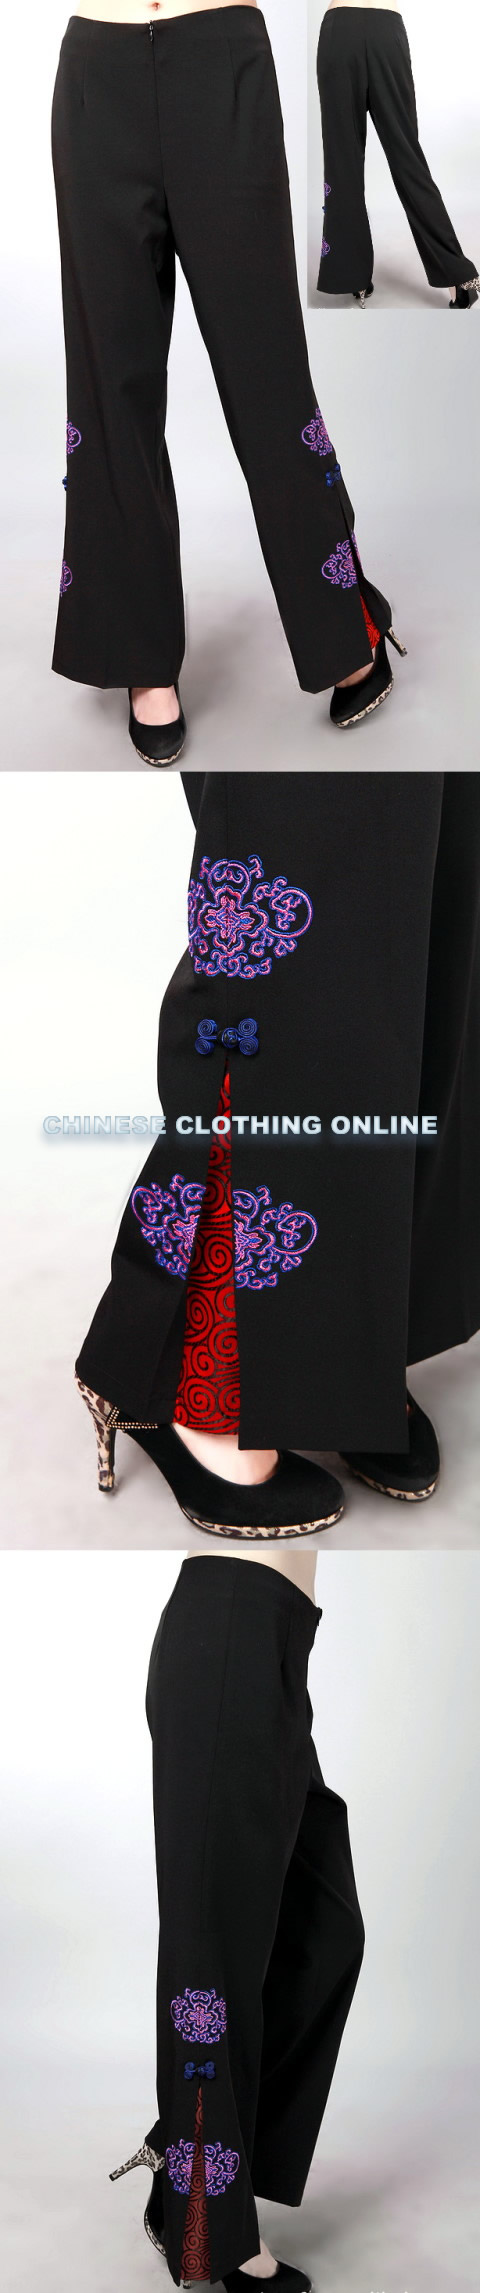 Mandarin Pants w/ Flower and Auspicious Cloud Embroidery (RM)